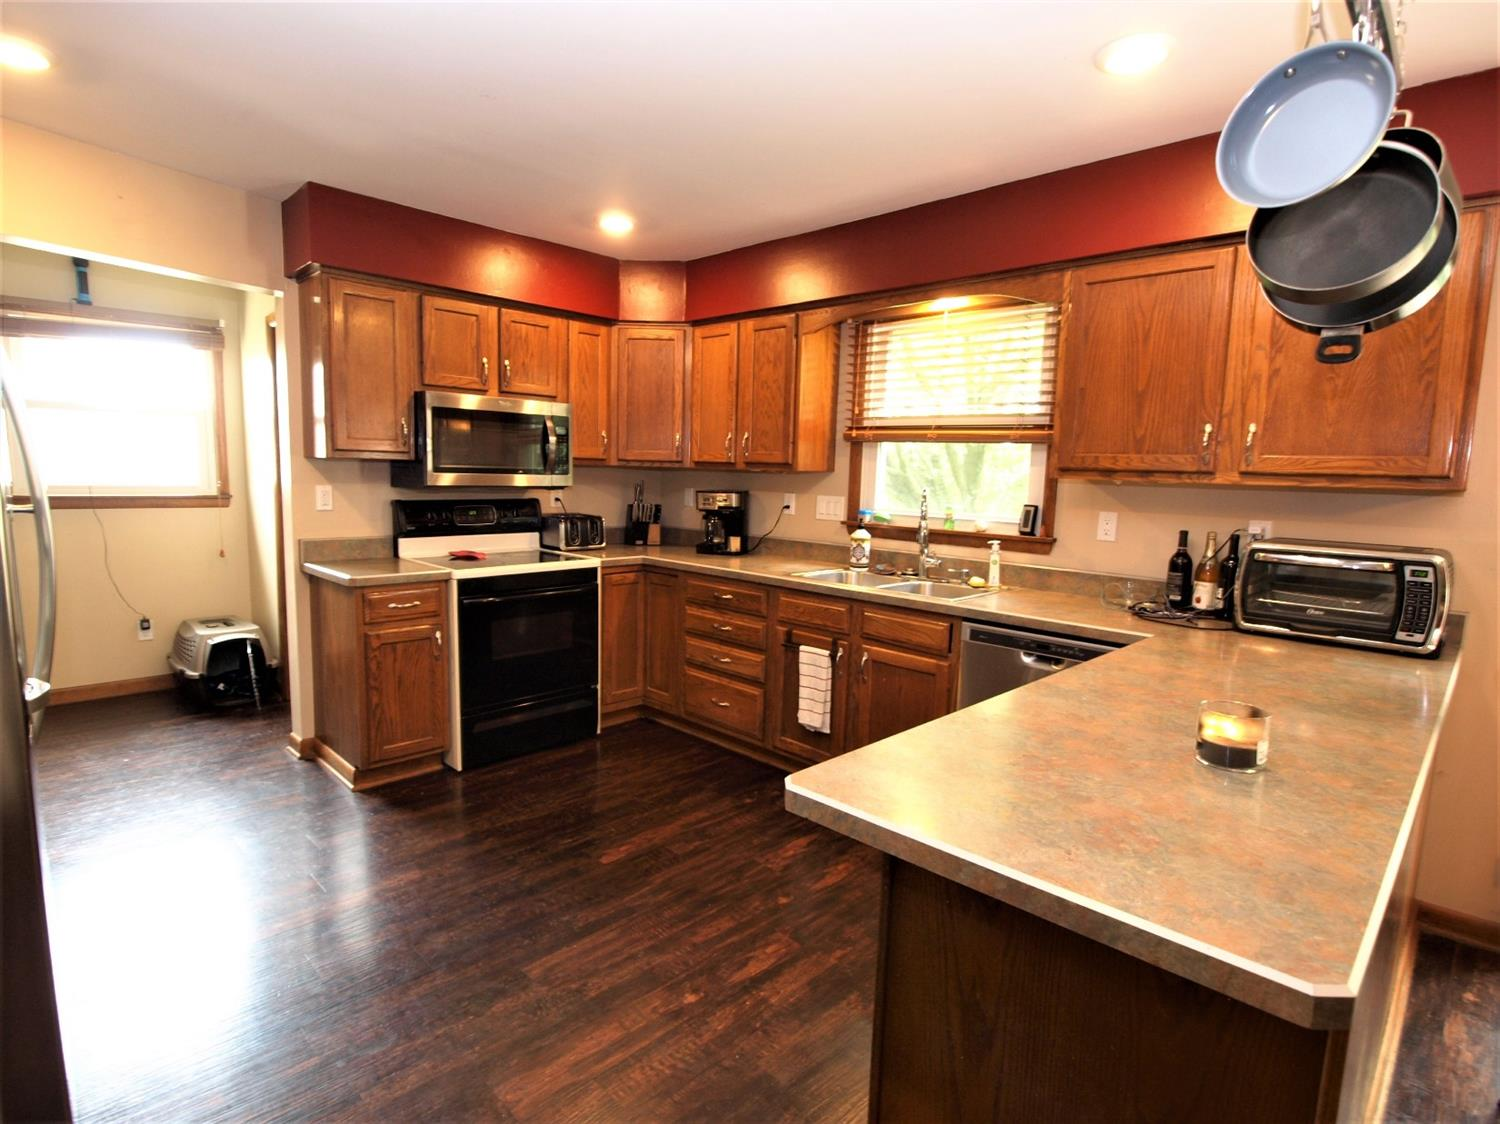 Photo 3 for 3341 Markdale Ct Bridgetown, OH 45248